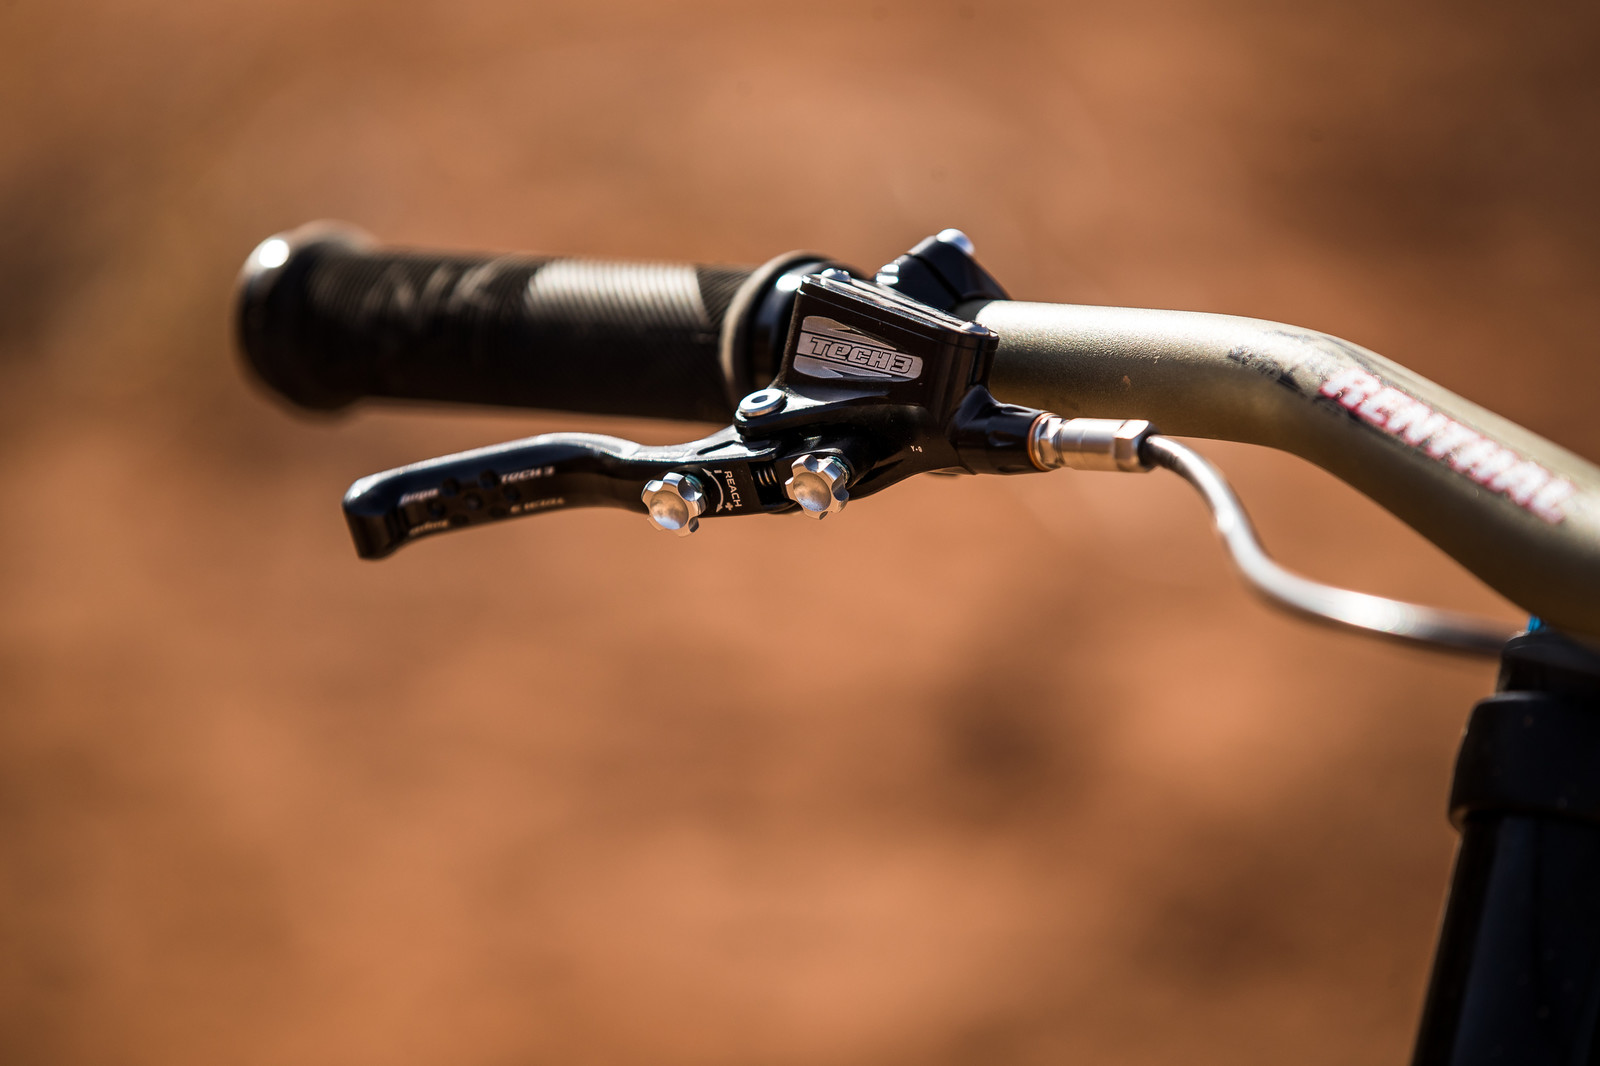 Handlebar and Brake Lever on Andreu Lacondeguy's YT TUES at Rampage 2019 - RAMPAGE BIKE - Andreu Lacondeguy's YT TUES - Mountain Biking Pictures - Vital MTB